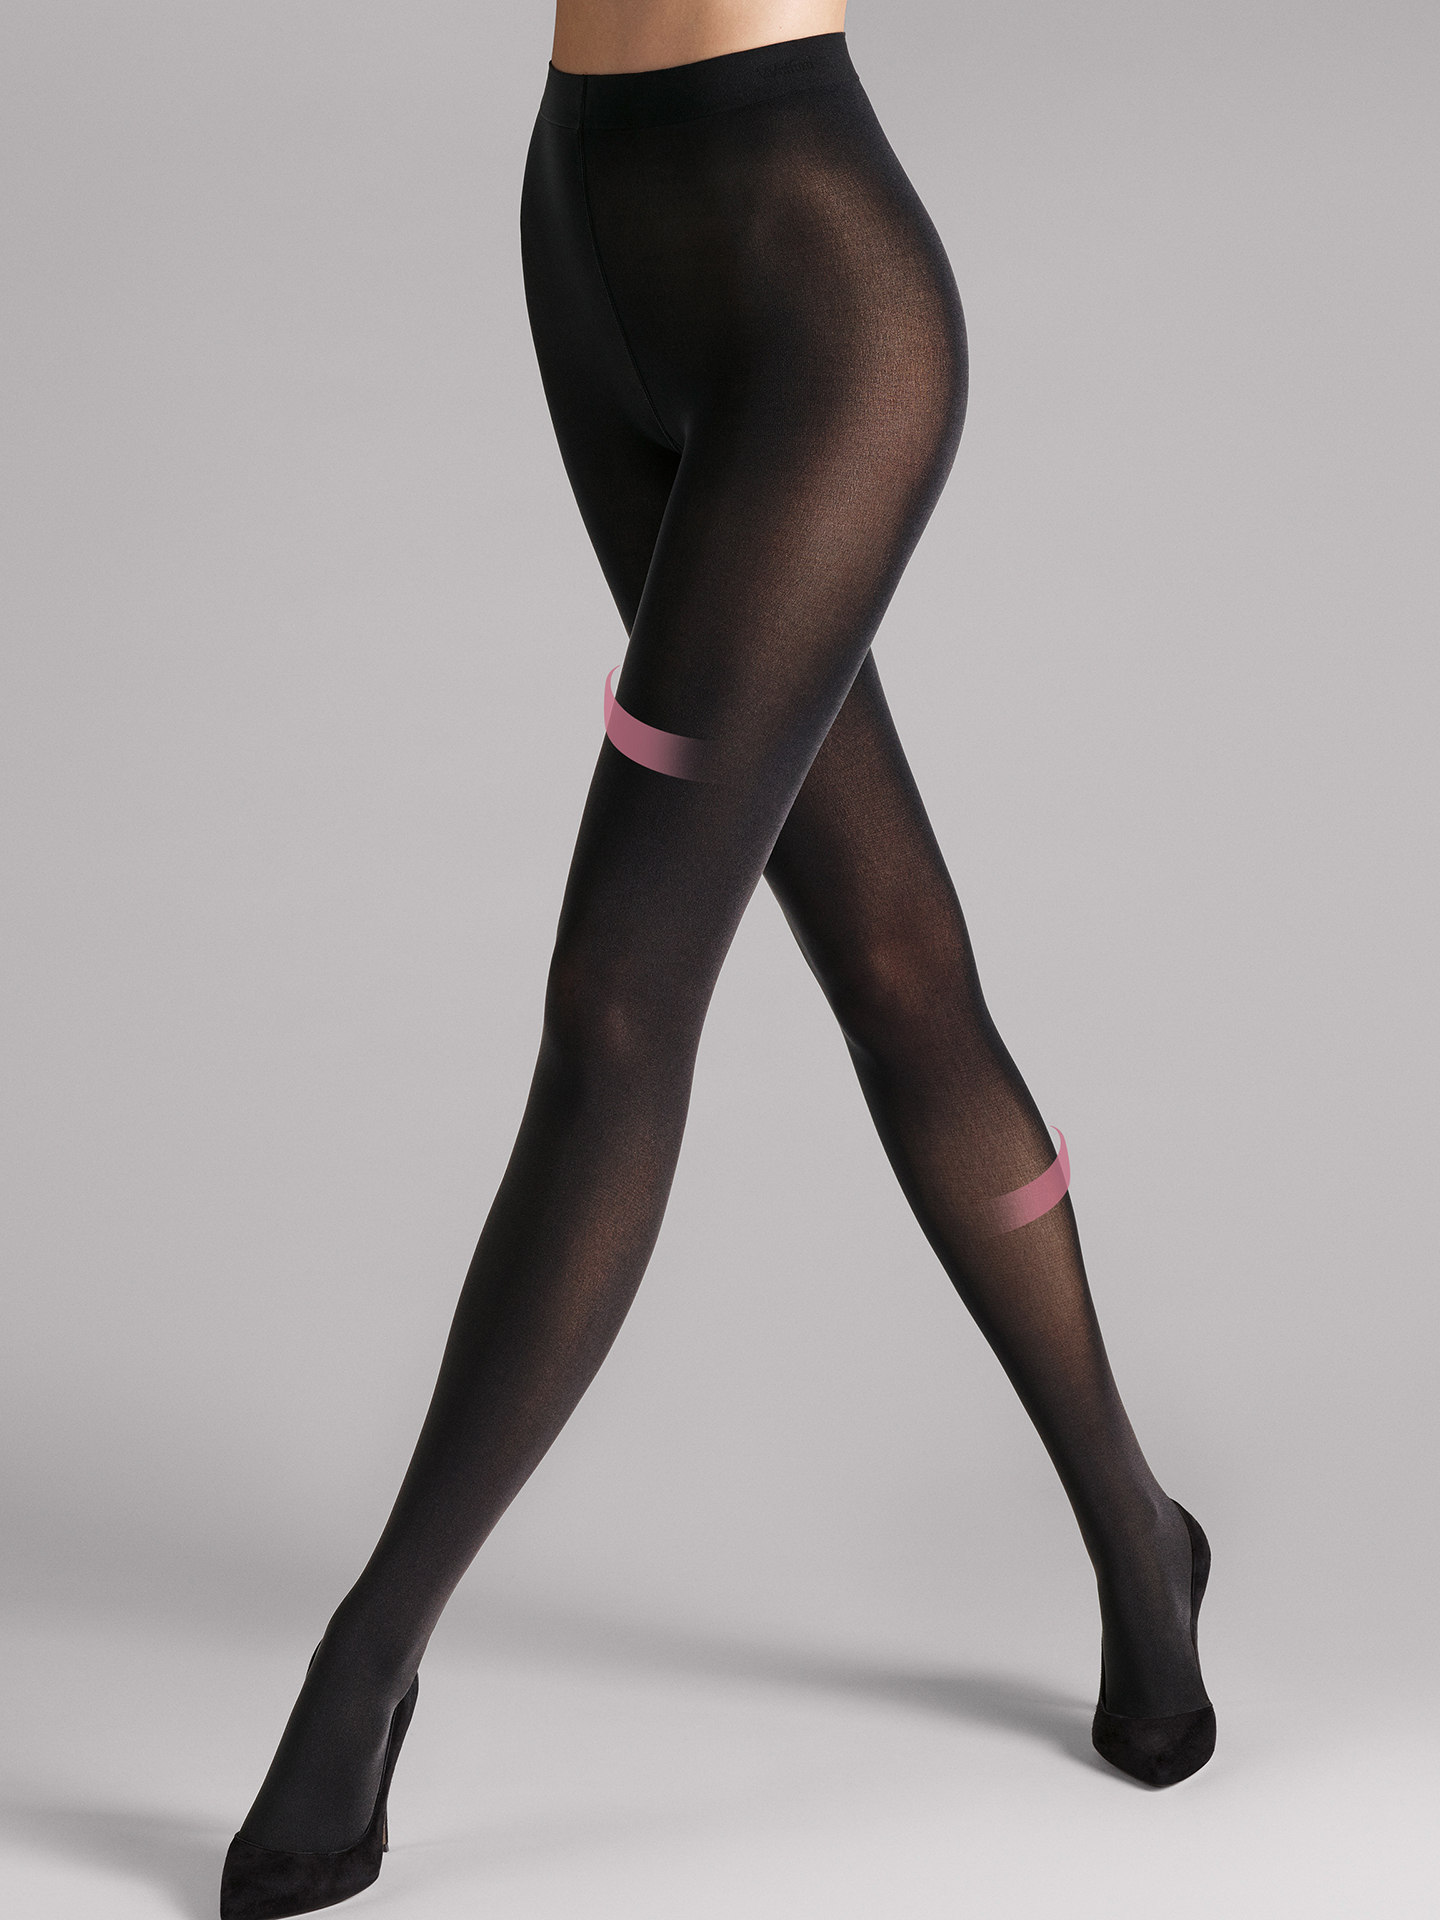 Wolford Apparel & Accessories > Clothing > Collant Individual 50 leg support - 7005 - M